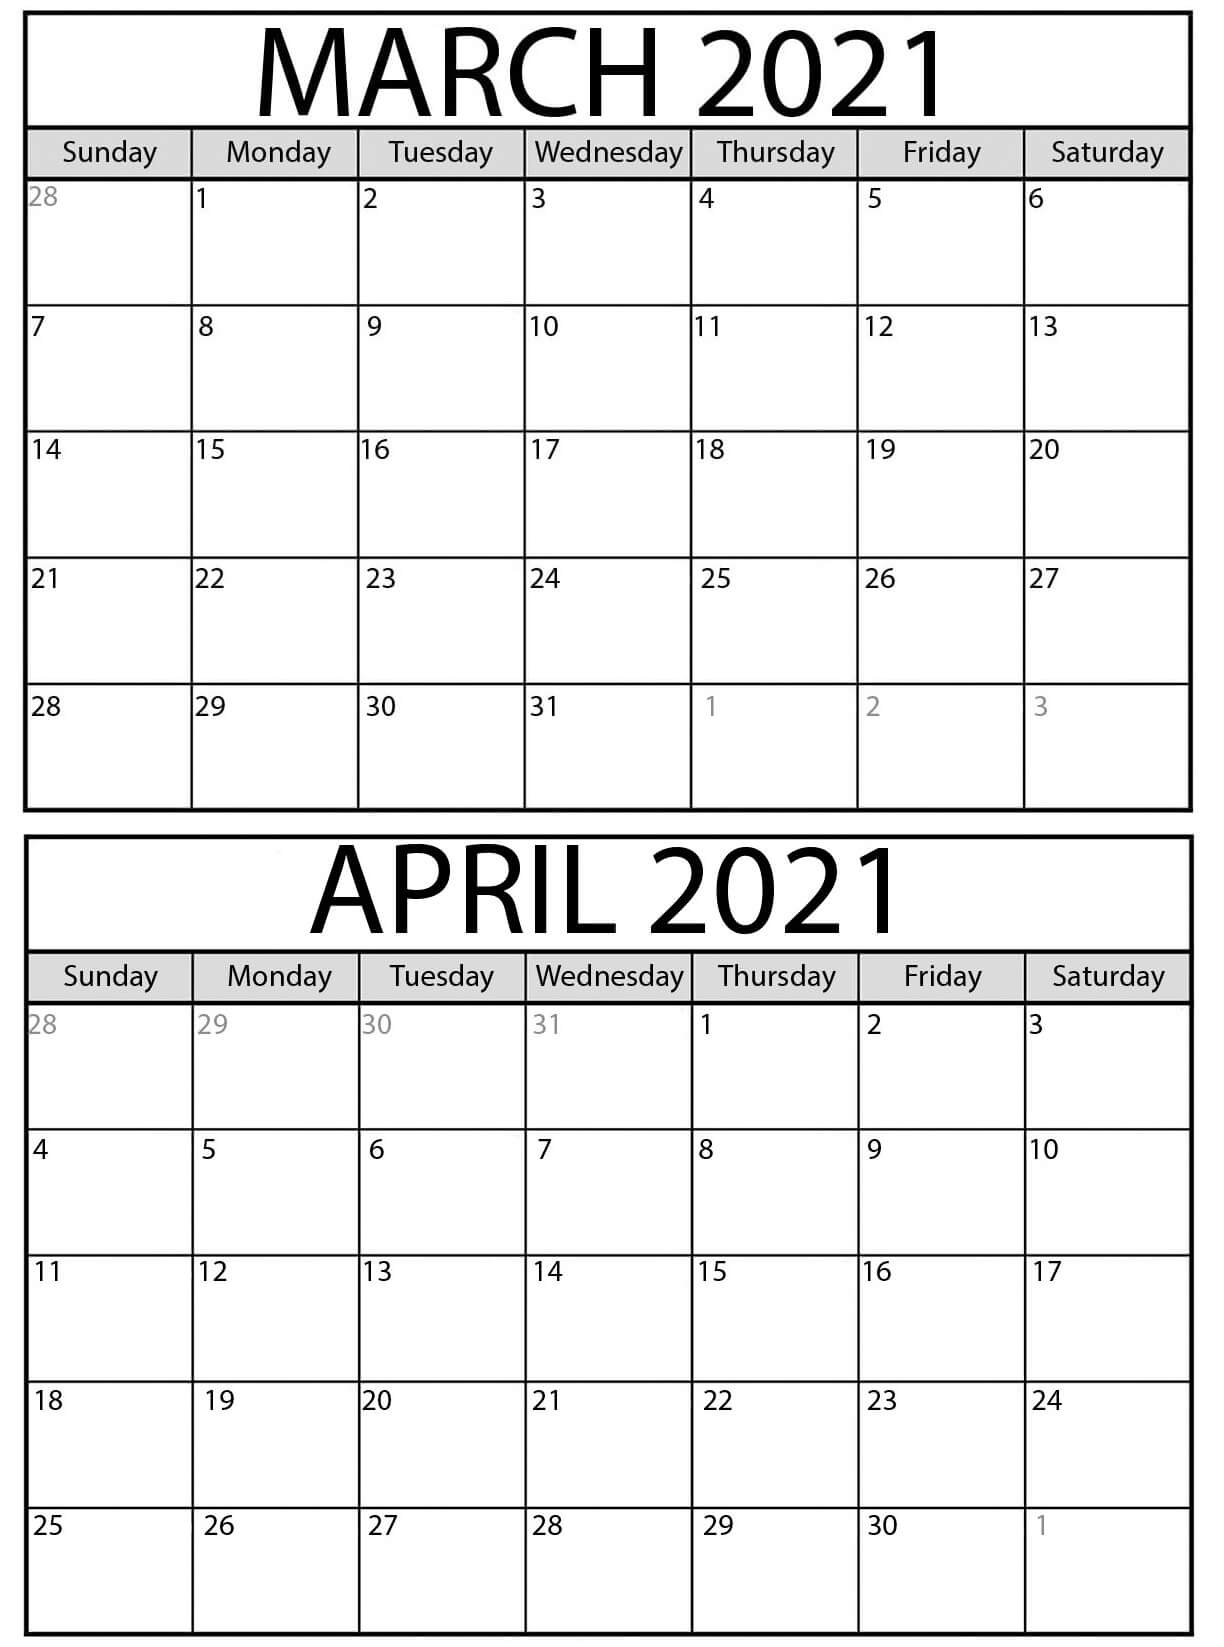 Blank 2021 March April Calendar Big Date With Holidays - Web